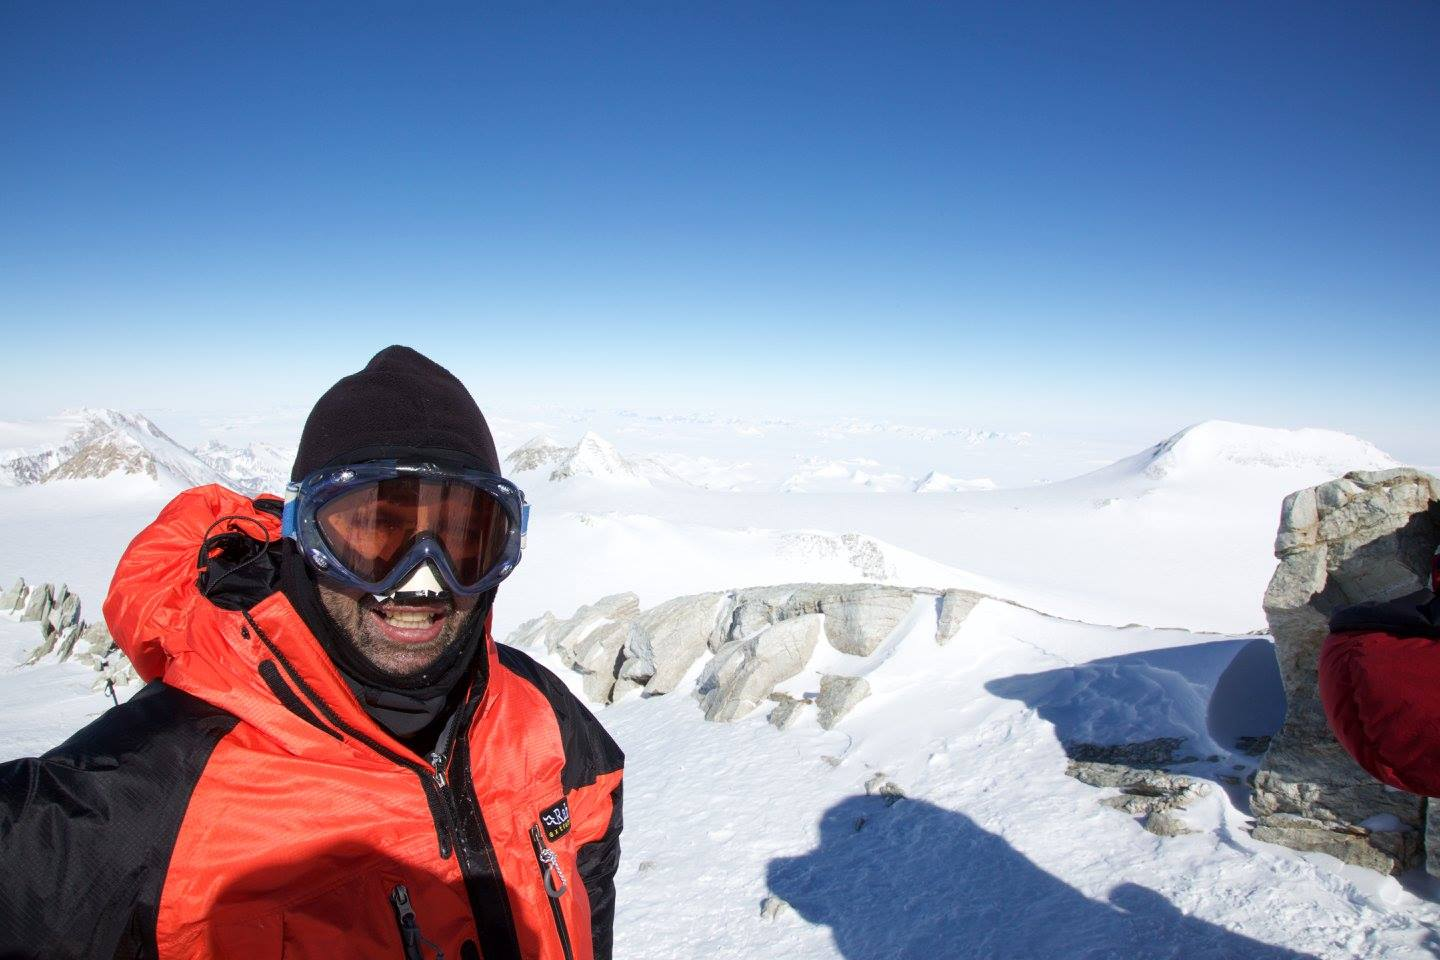 An amazing achievement from Greg summiting Mt Vinson in Antarctica recently, on his way to conquering 7 peaks in 7 continents . With only 2 more to go Greg is on a mission to scale these mountains while carrying all equipment and supplies himself. And congrats to Bucket for taking out the NZ Masters Tennis title over the weekend. Well done boys!